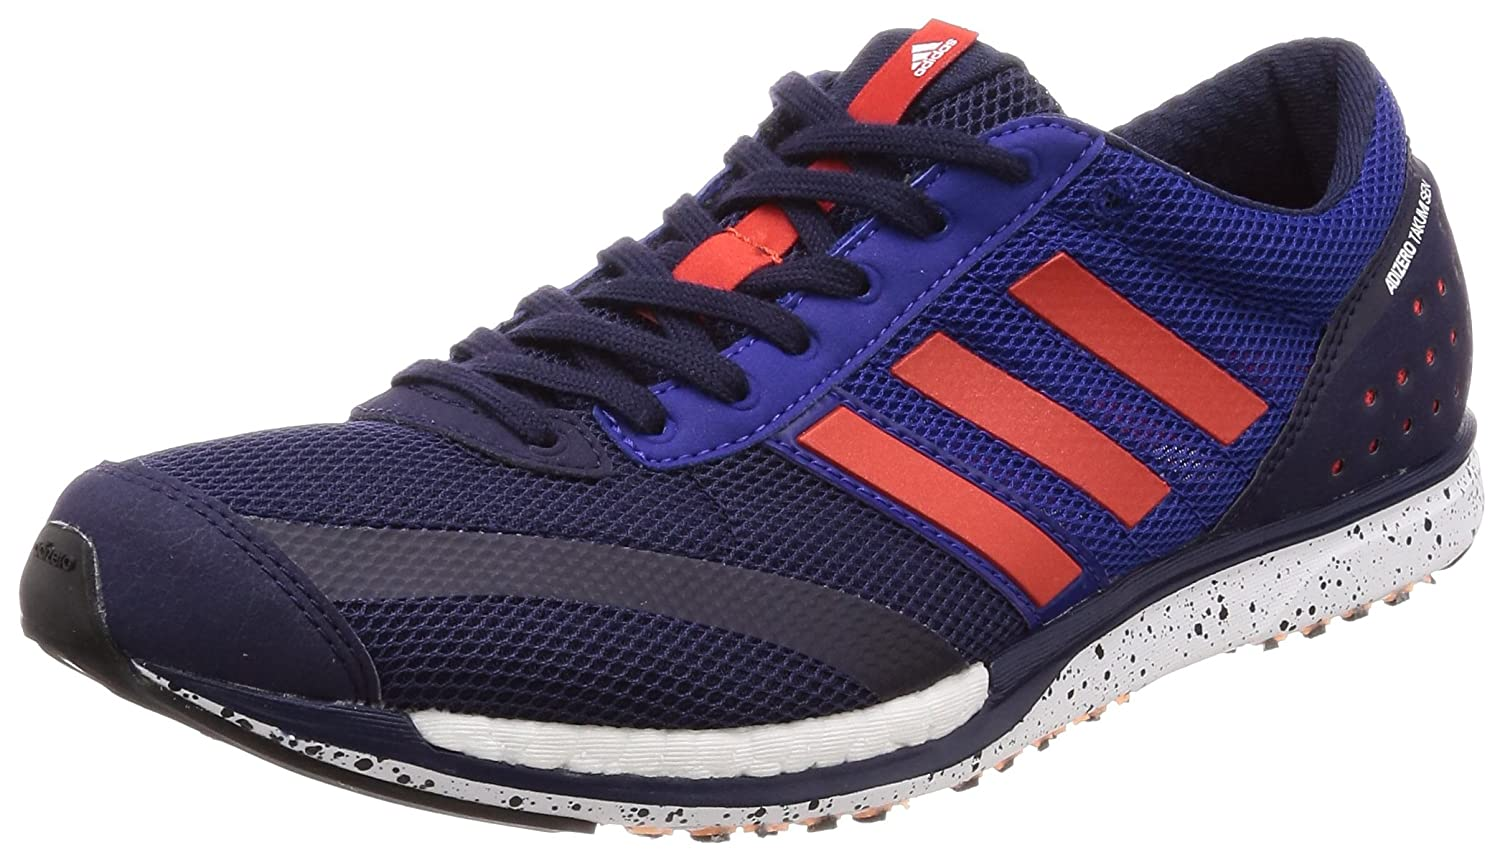 promo code c26ff 89a7d adidas Unisex Adults Adizero Takumi Sen Running Shoes, Multicolour (Noble  Ink F17Hi-Res Red S18Real Purple S18 Noble Ink F17Hi-Res Red S18Real  Purple ...